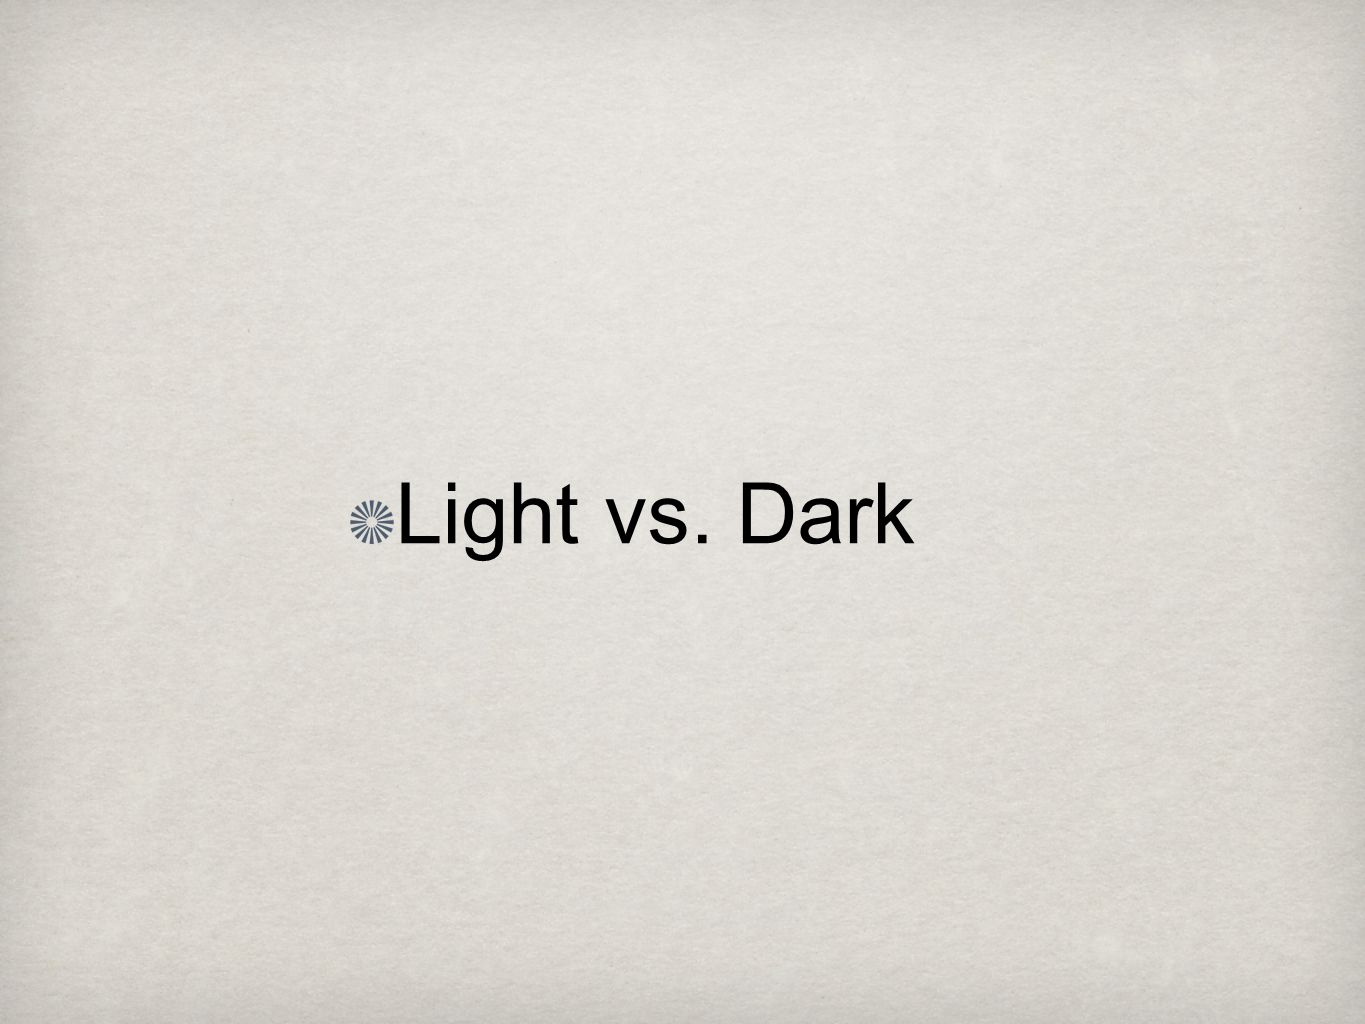 Light vs. Dark